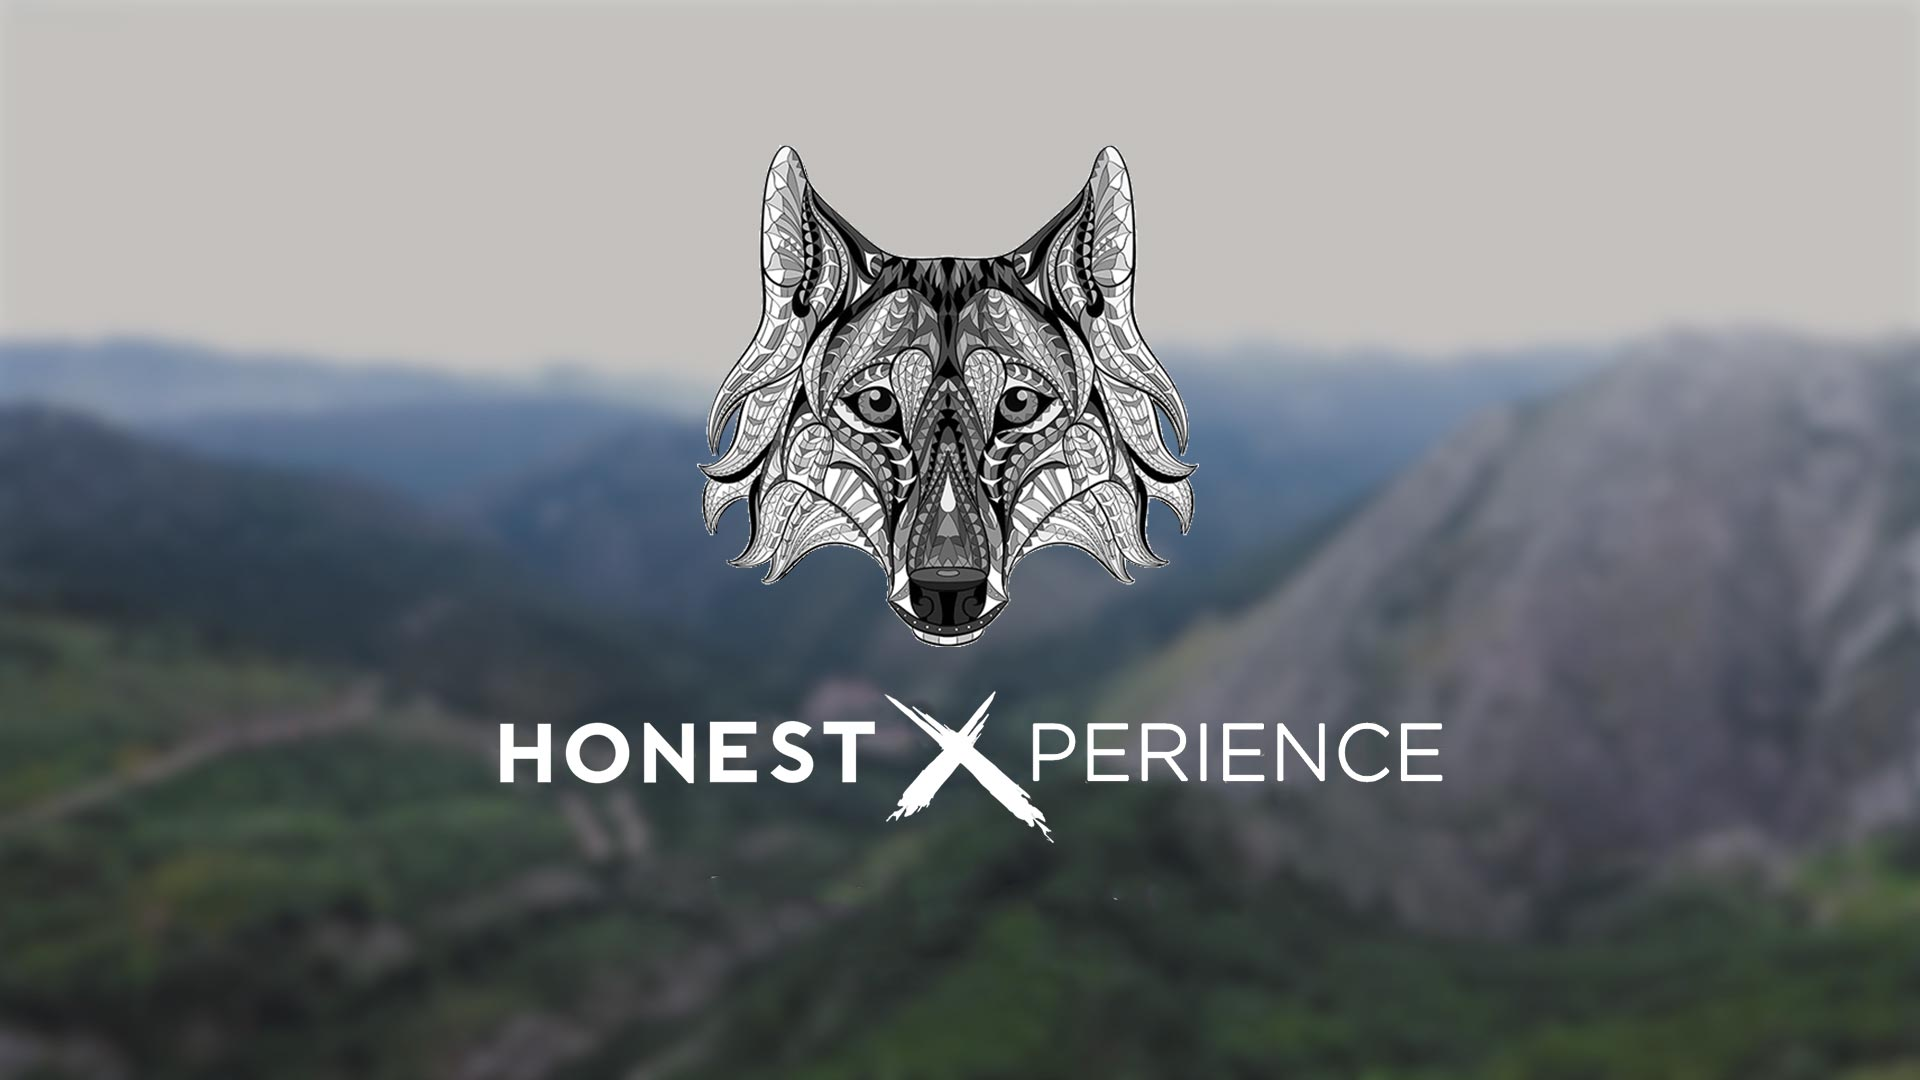 Honest Xperience